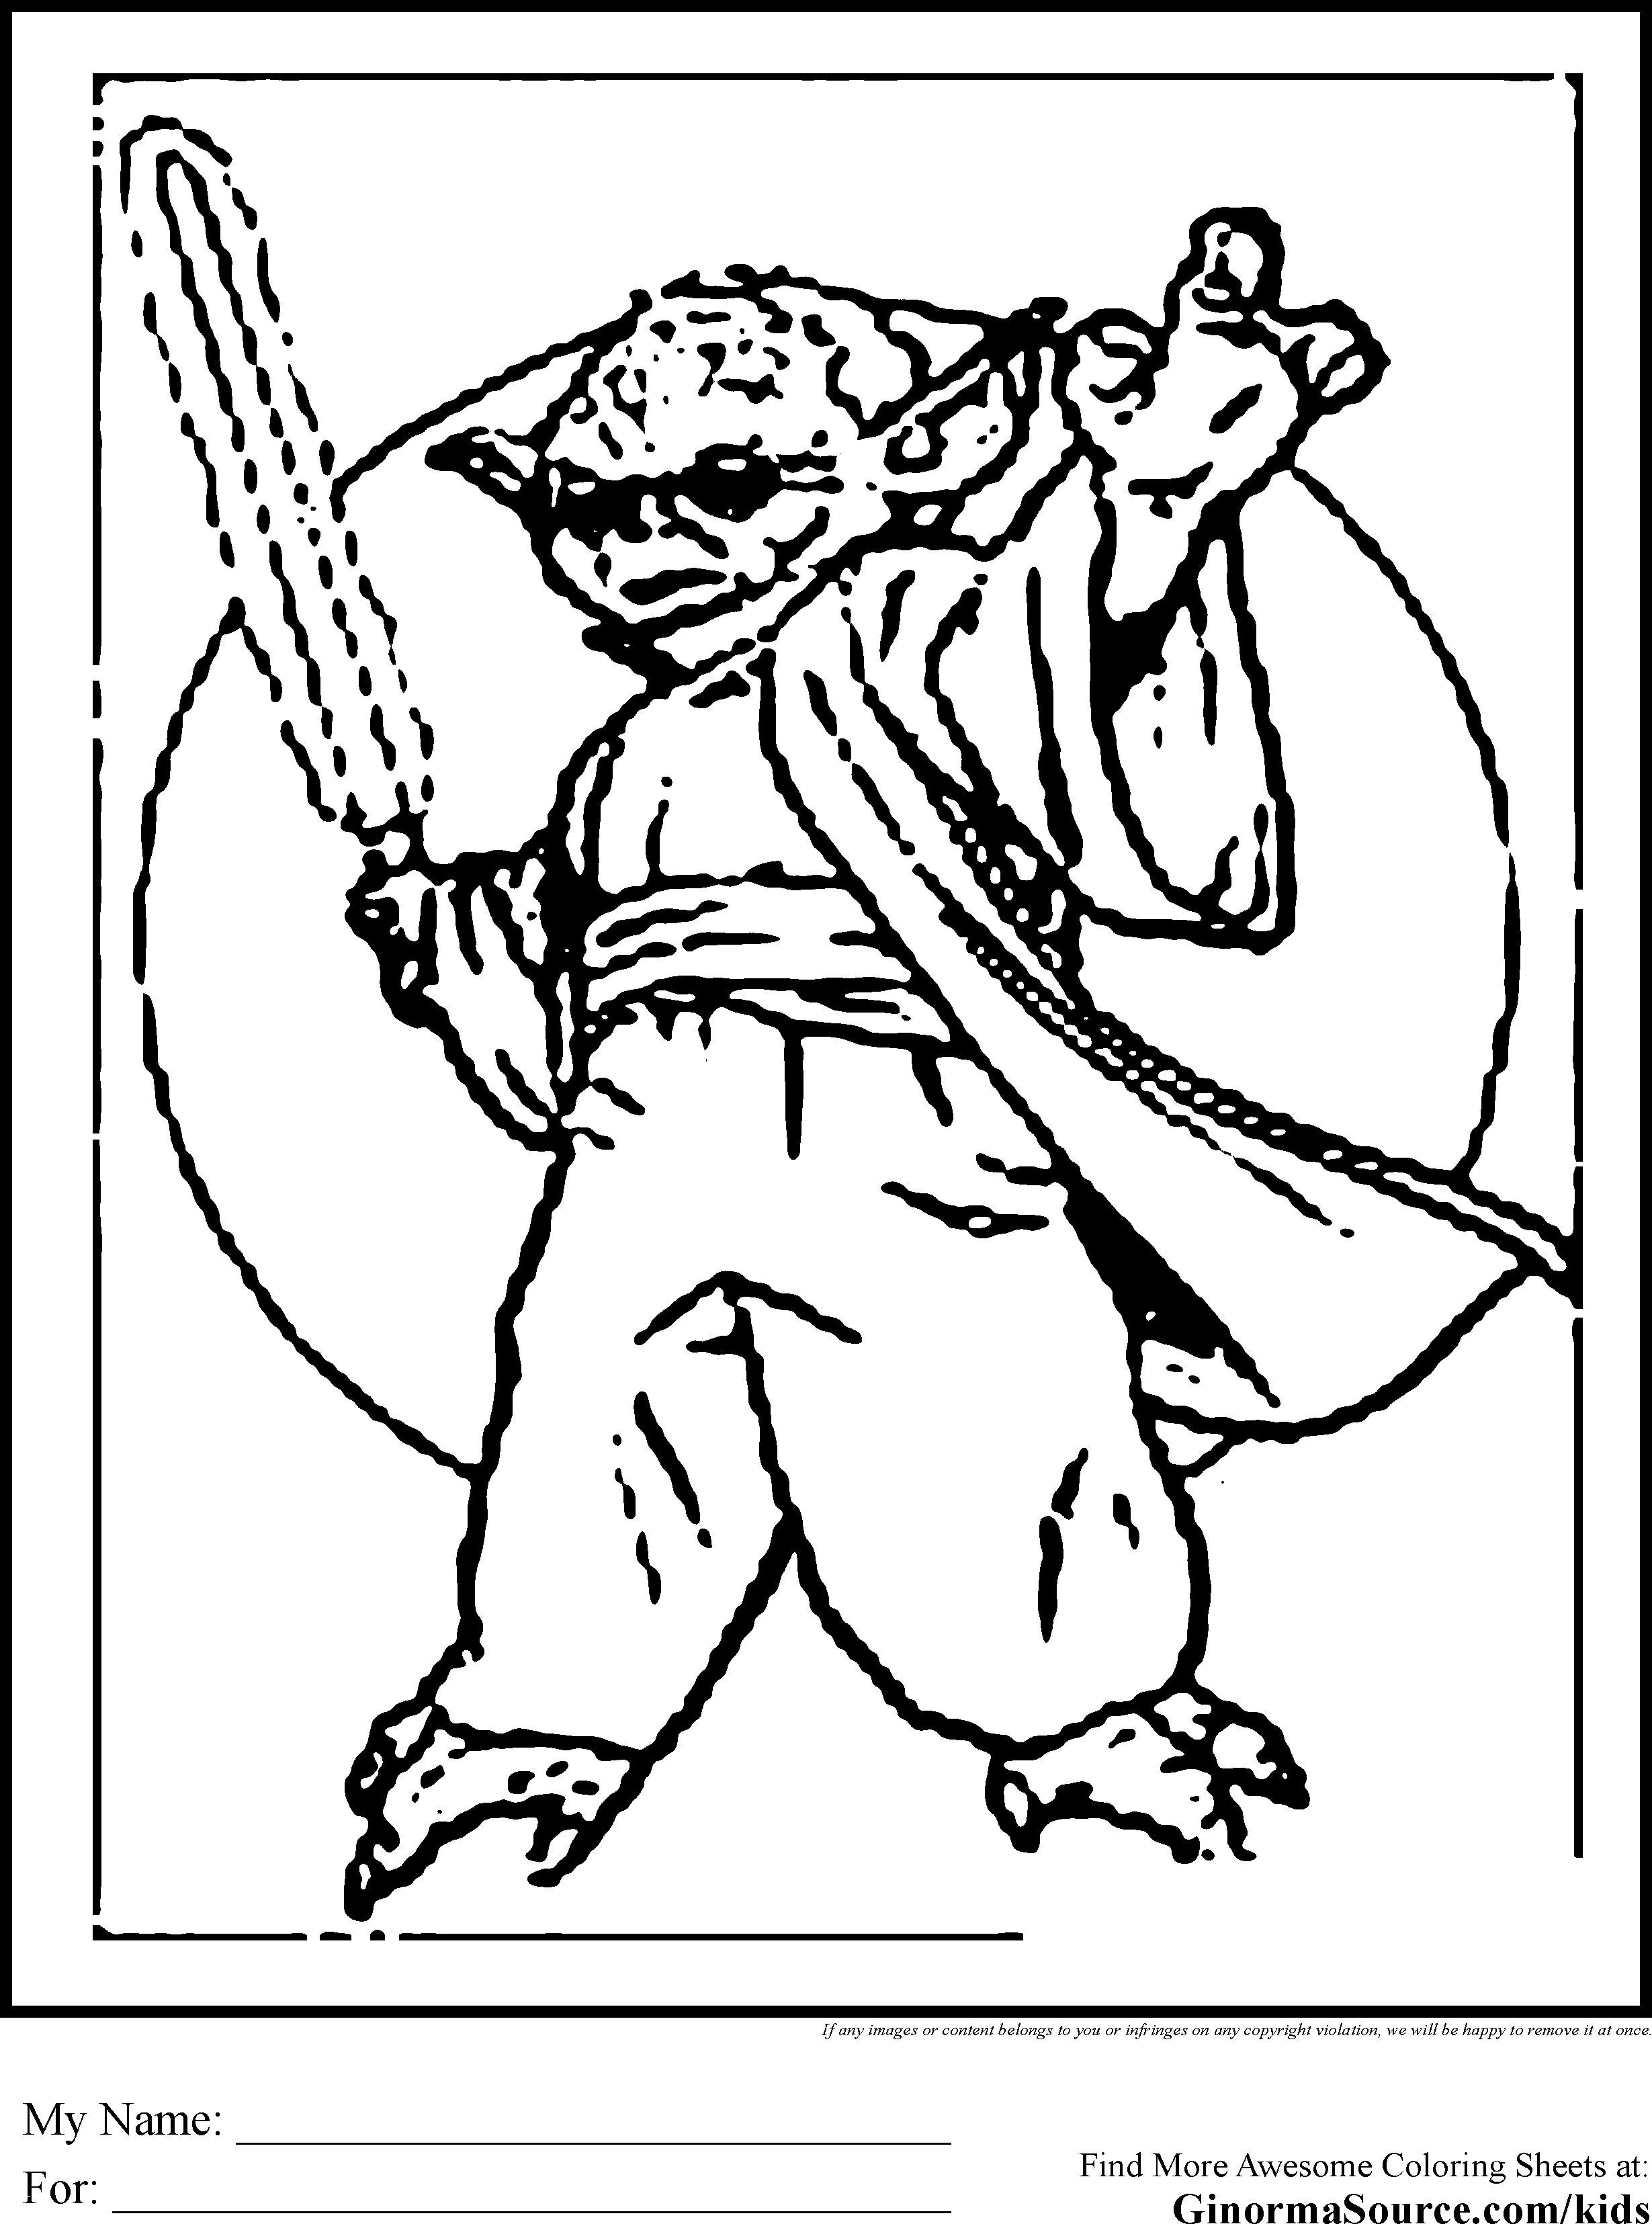 star wars the force awakens coloring pages Download-Yoda Ausmalbilder Elegant Star Wars Printable Coloring Pages Fresh 19-i